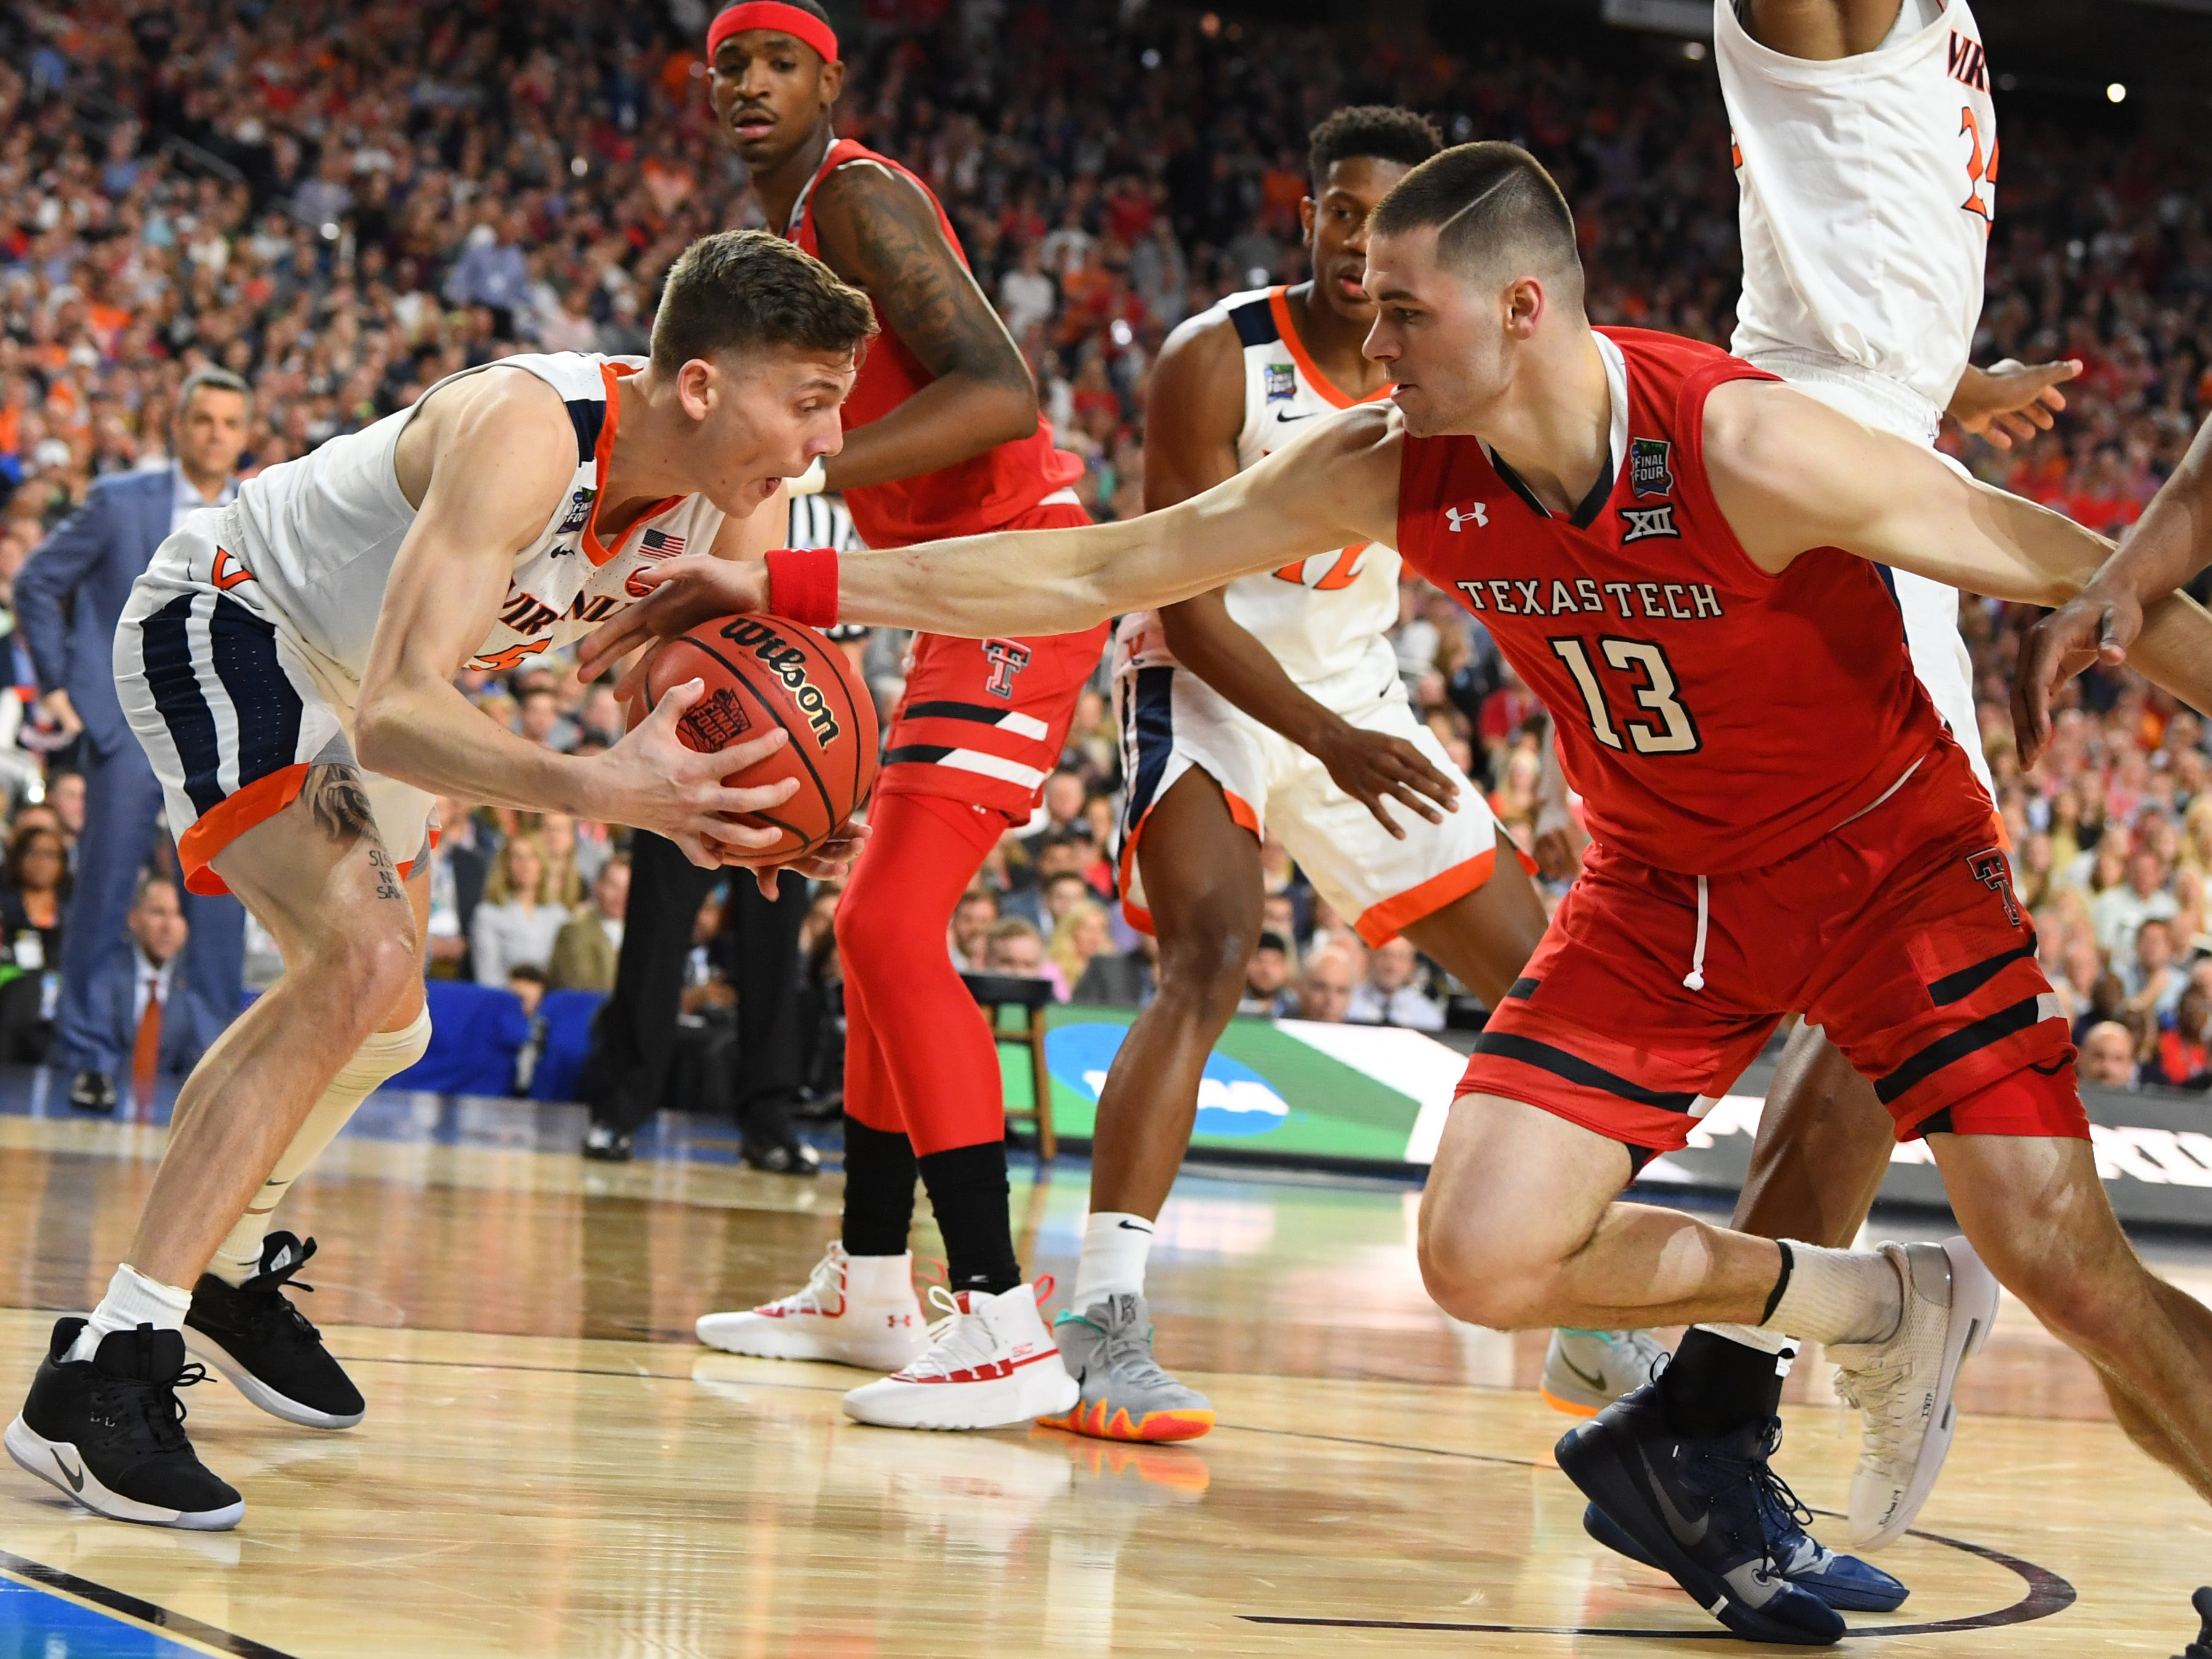 Virginia's Kyle Guy steals the ball from Texas Tech's Matt Mooney (13) in the championship game.